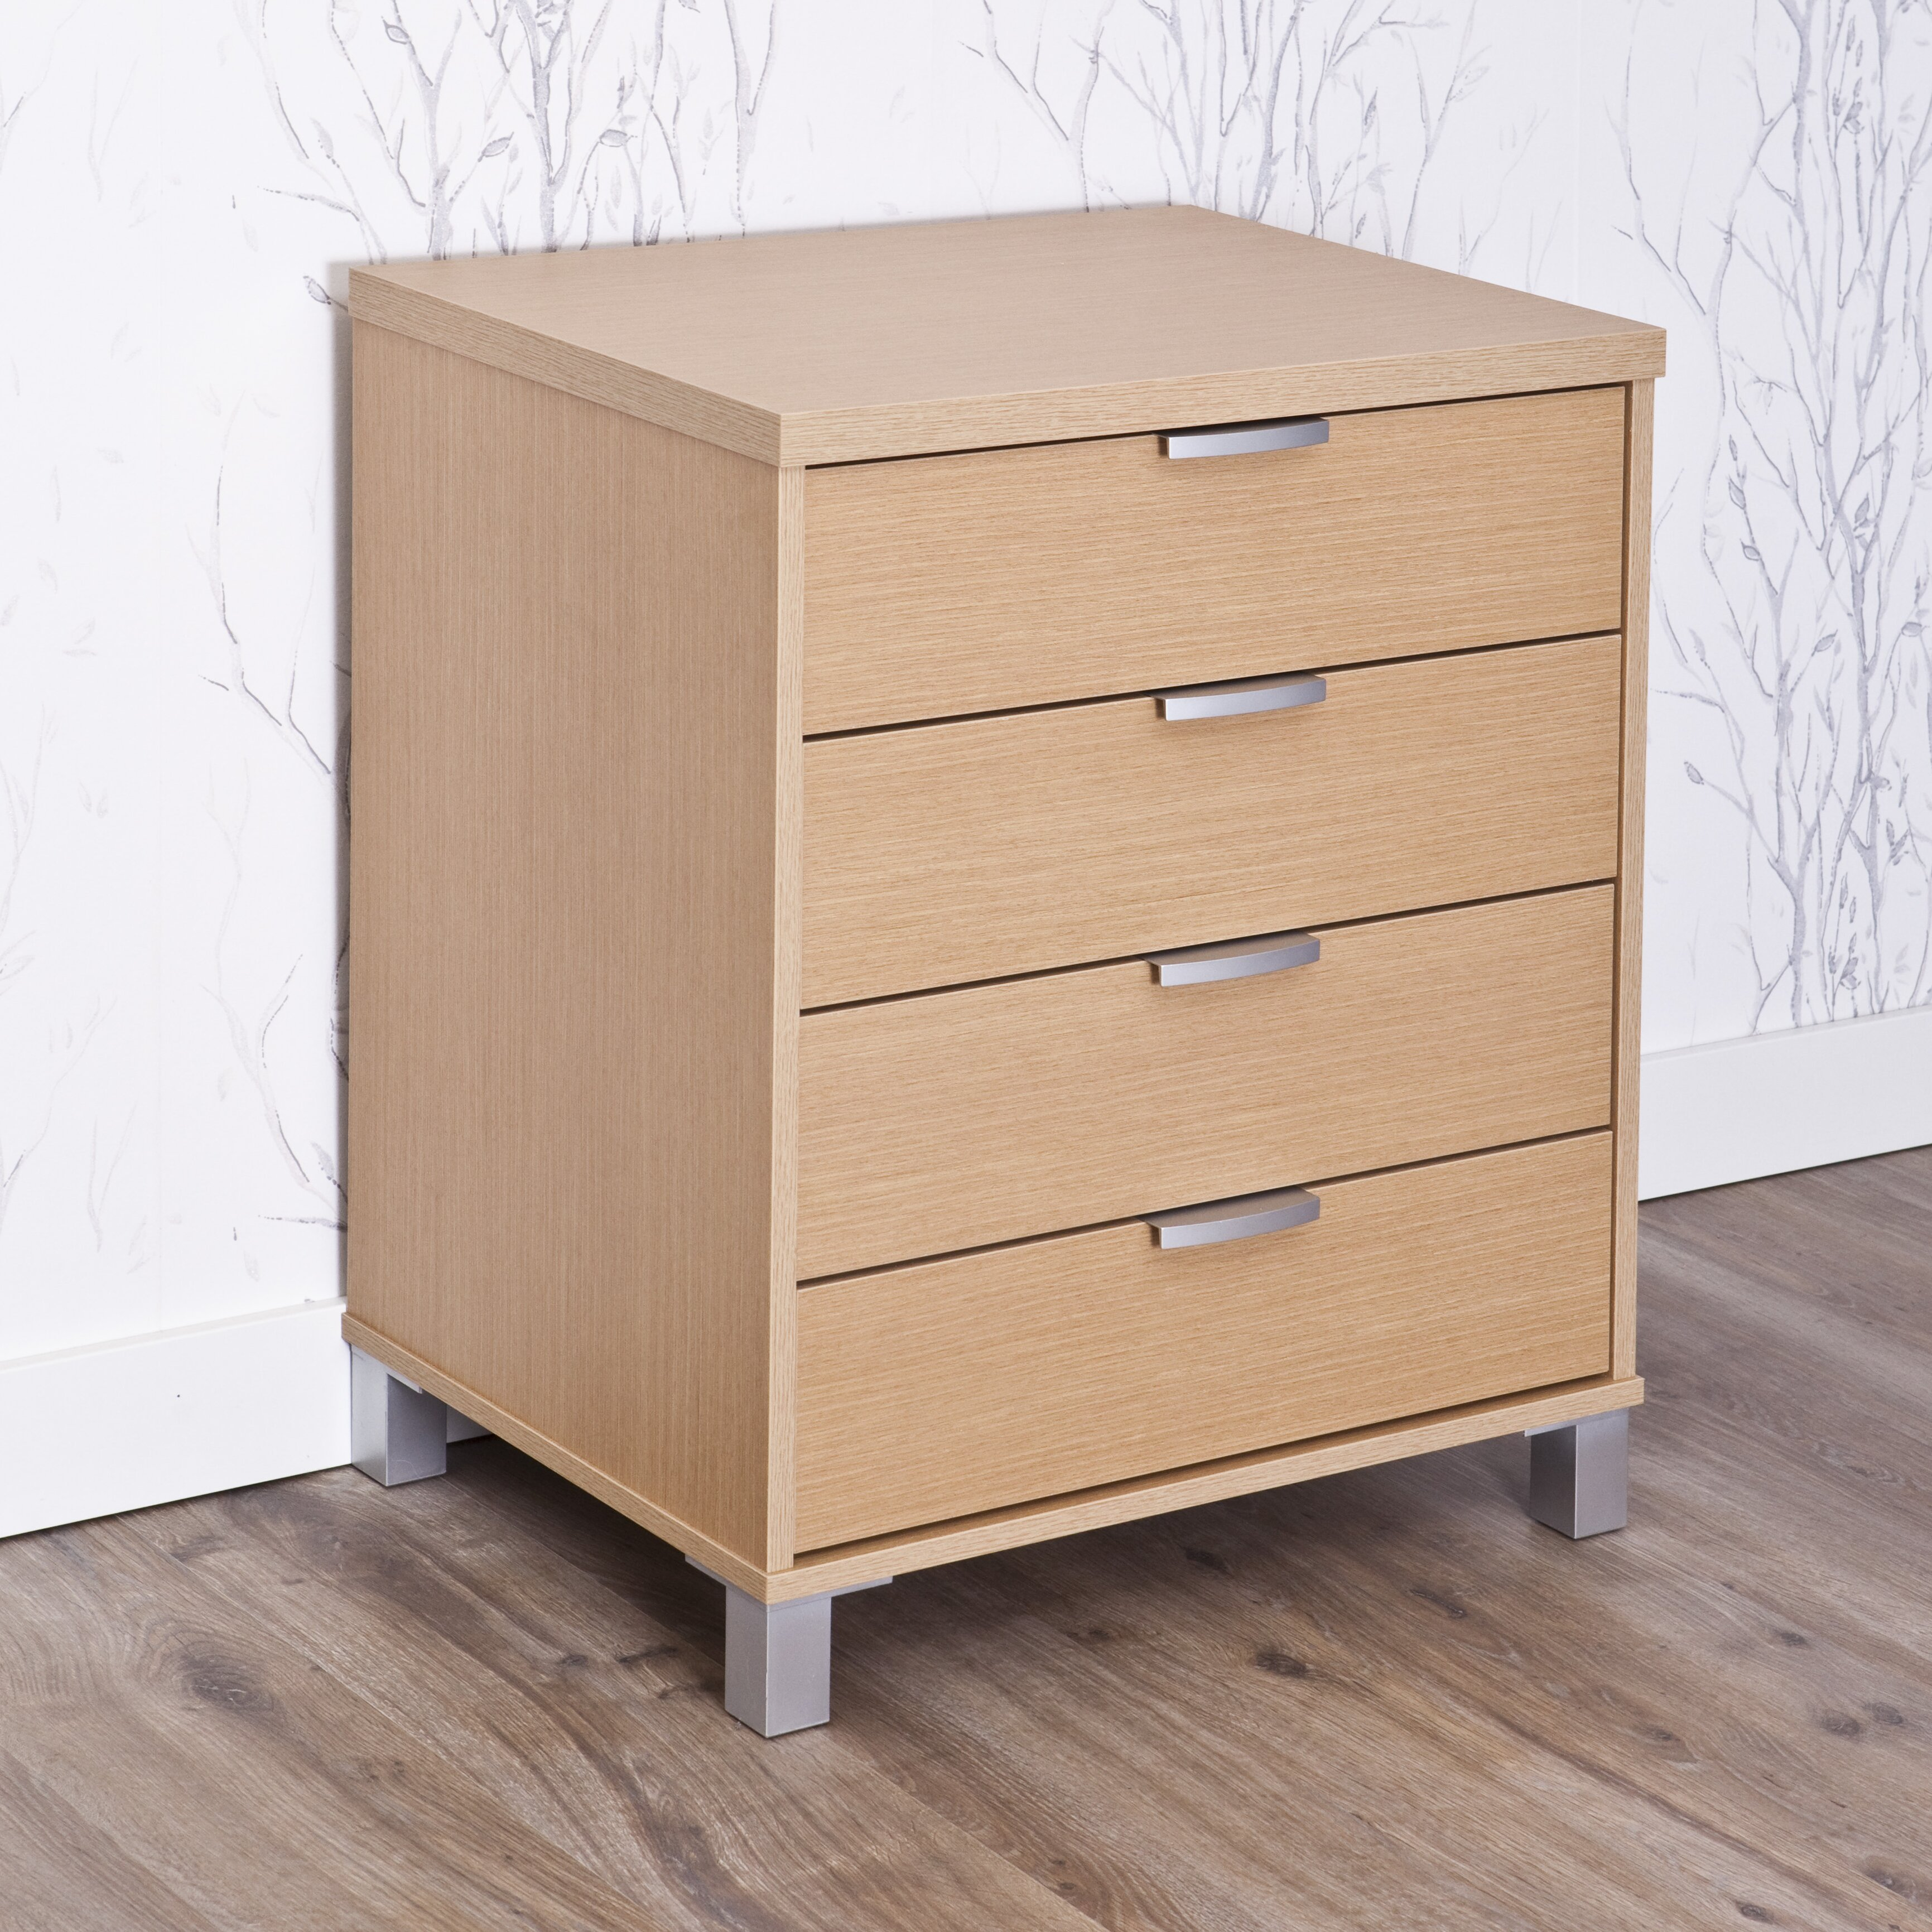 Hokku designs anderson 4 drawer chest of drawers wayfair uk for Chest of drawers ideas